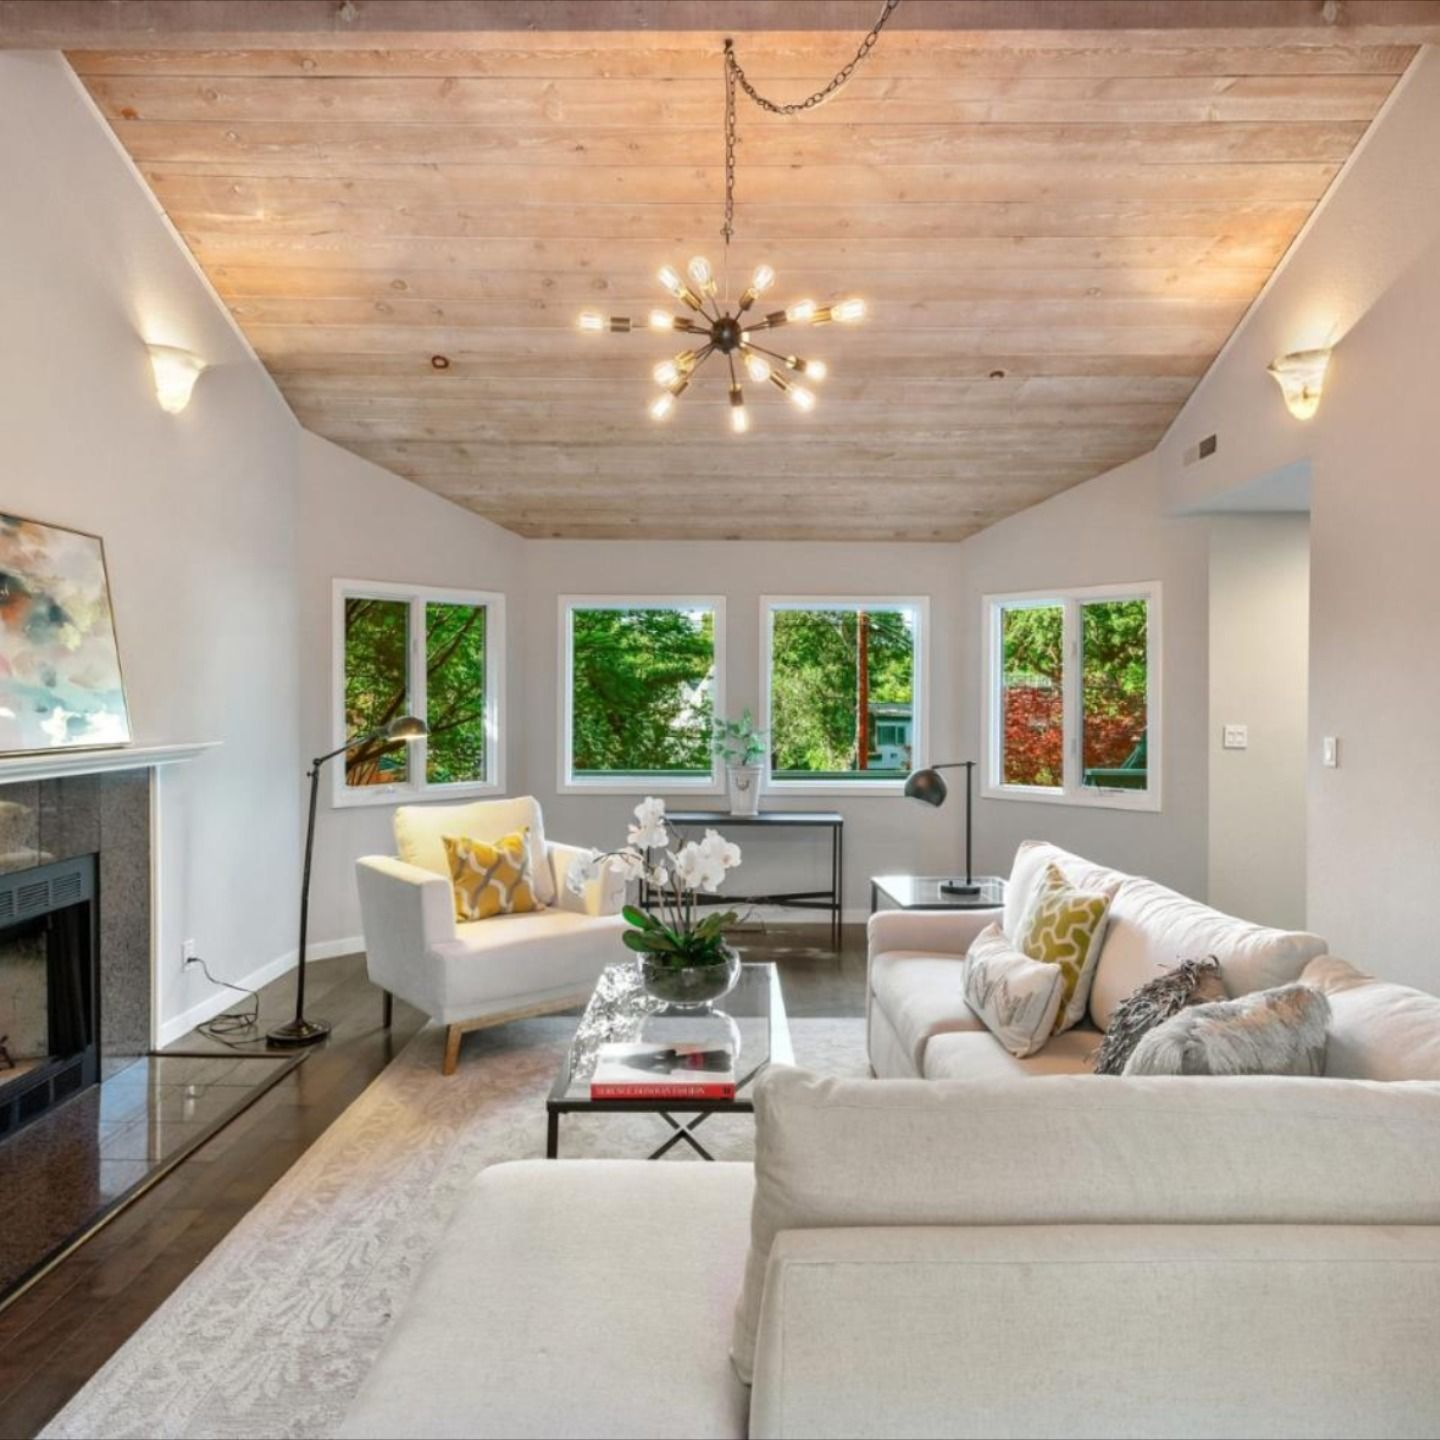 20 Bishop, Menlo Park, CA 94025 - $2,995,000 4 Beds   3 Baths   2,650 Sq. Ft.  Courtesy of : Billy Mcnair - Compass  For questions or for private showing contact: Carolyn Botts Compass P: (650) 207-0246 E: carolynb@apr.com  #homeforsaleinMenloPark #homesforsale #MenloParkHomes #realtor #compass #realestate #luxuryrealestate #realestateagent #dreamhome #milliondollarhomes #realestatemarket #homes #findhome #beautifulhome  #housingmarket #siliconvalleyhomes  #carolynbotts #carolynbottsrealtor